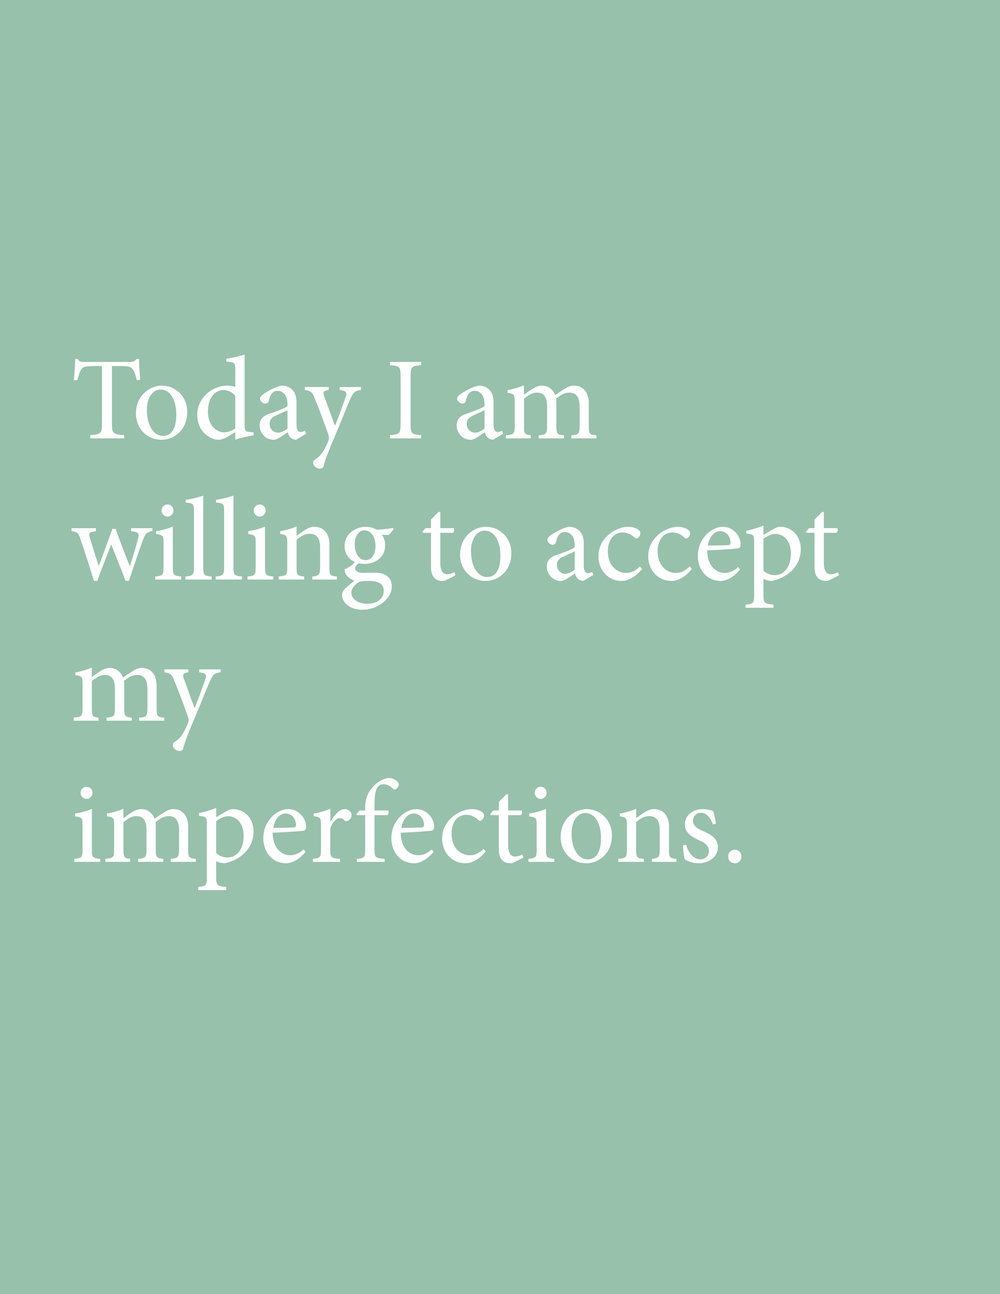 quotes-acceptimperfections.jpg